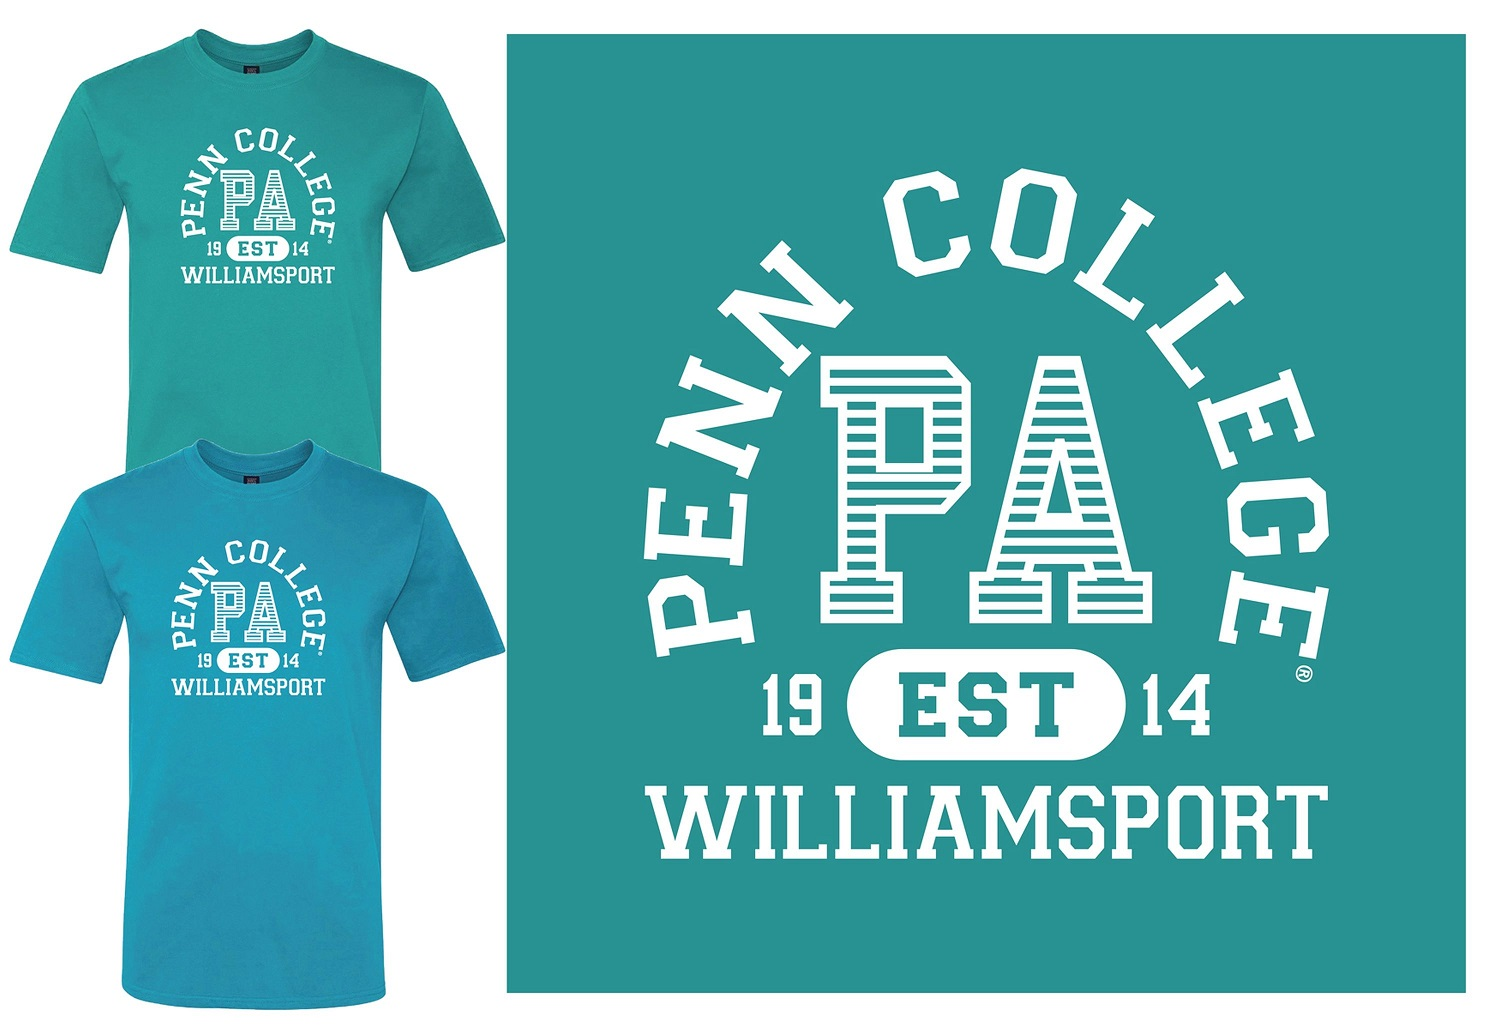 Image For PCT Williamsport PA Tees in Jade or Pacific Blue